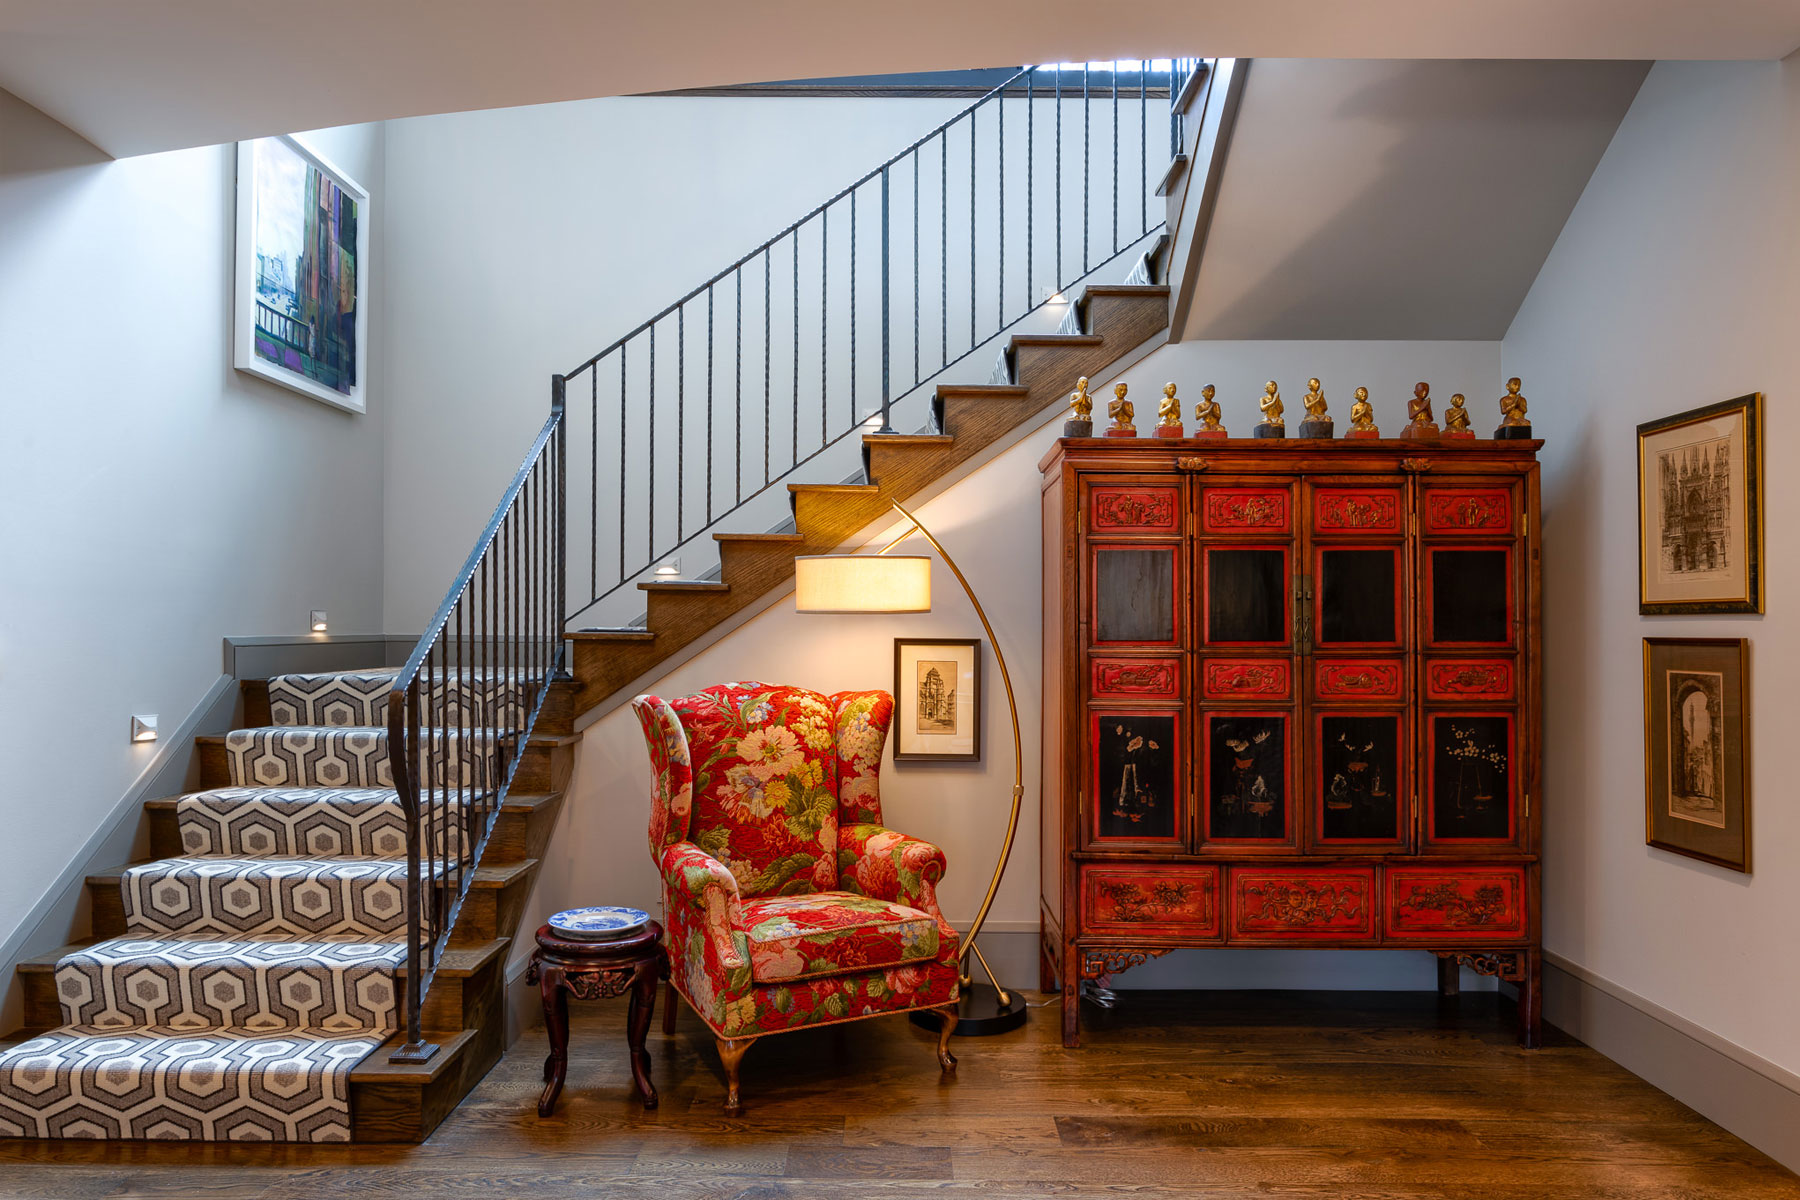 Custom furniture at the bottom landing of the staircase